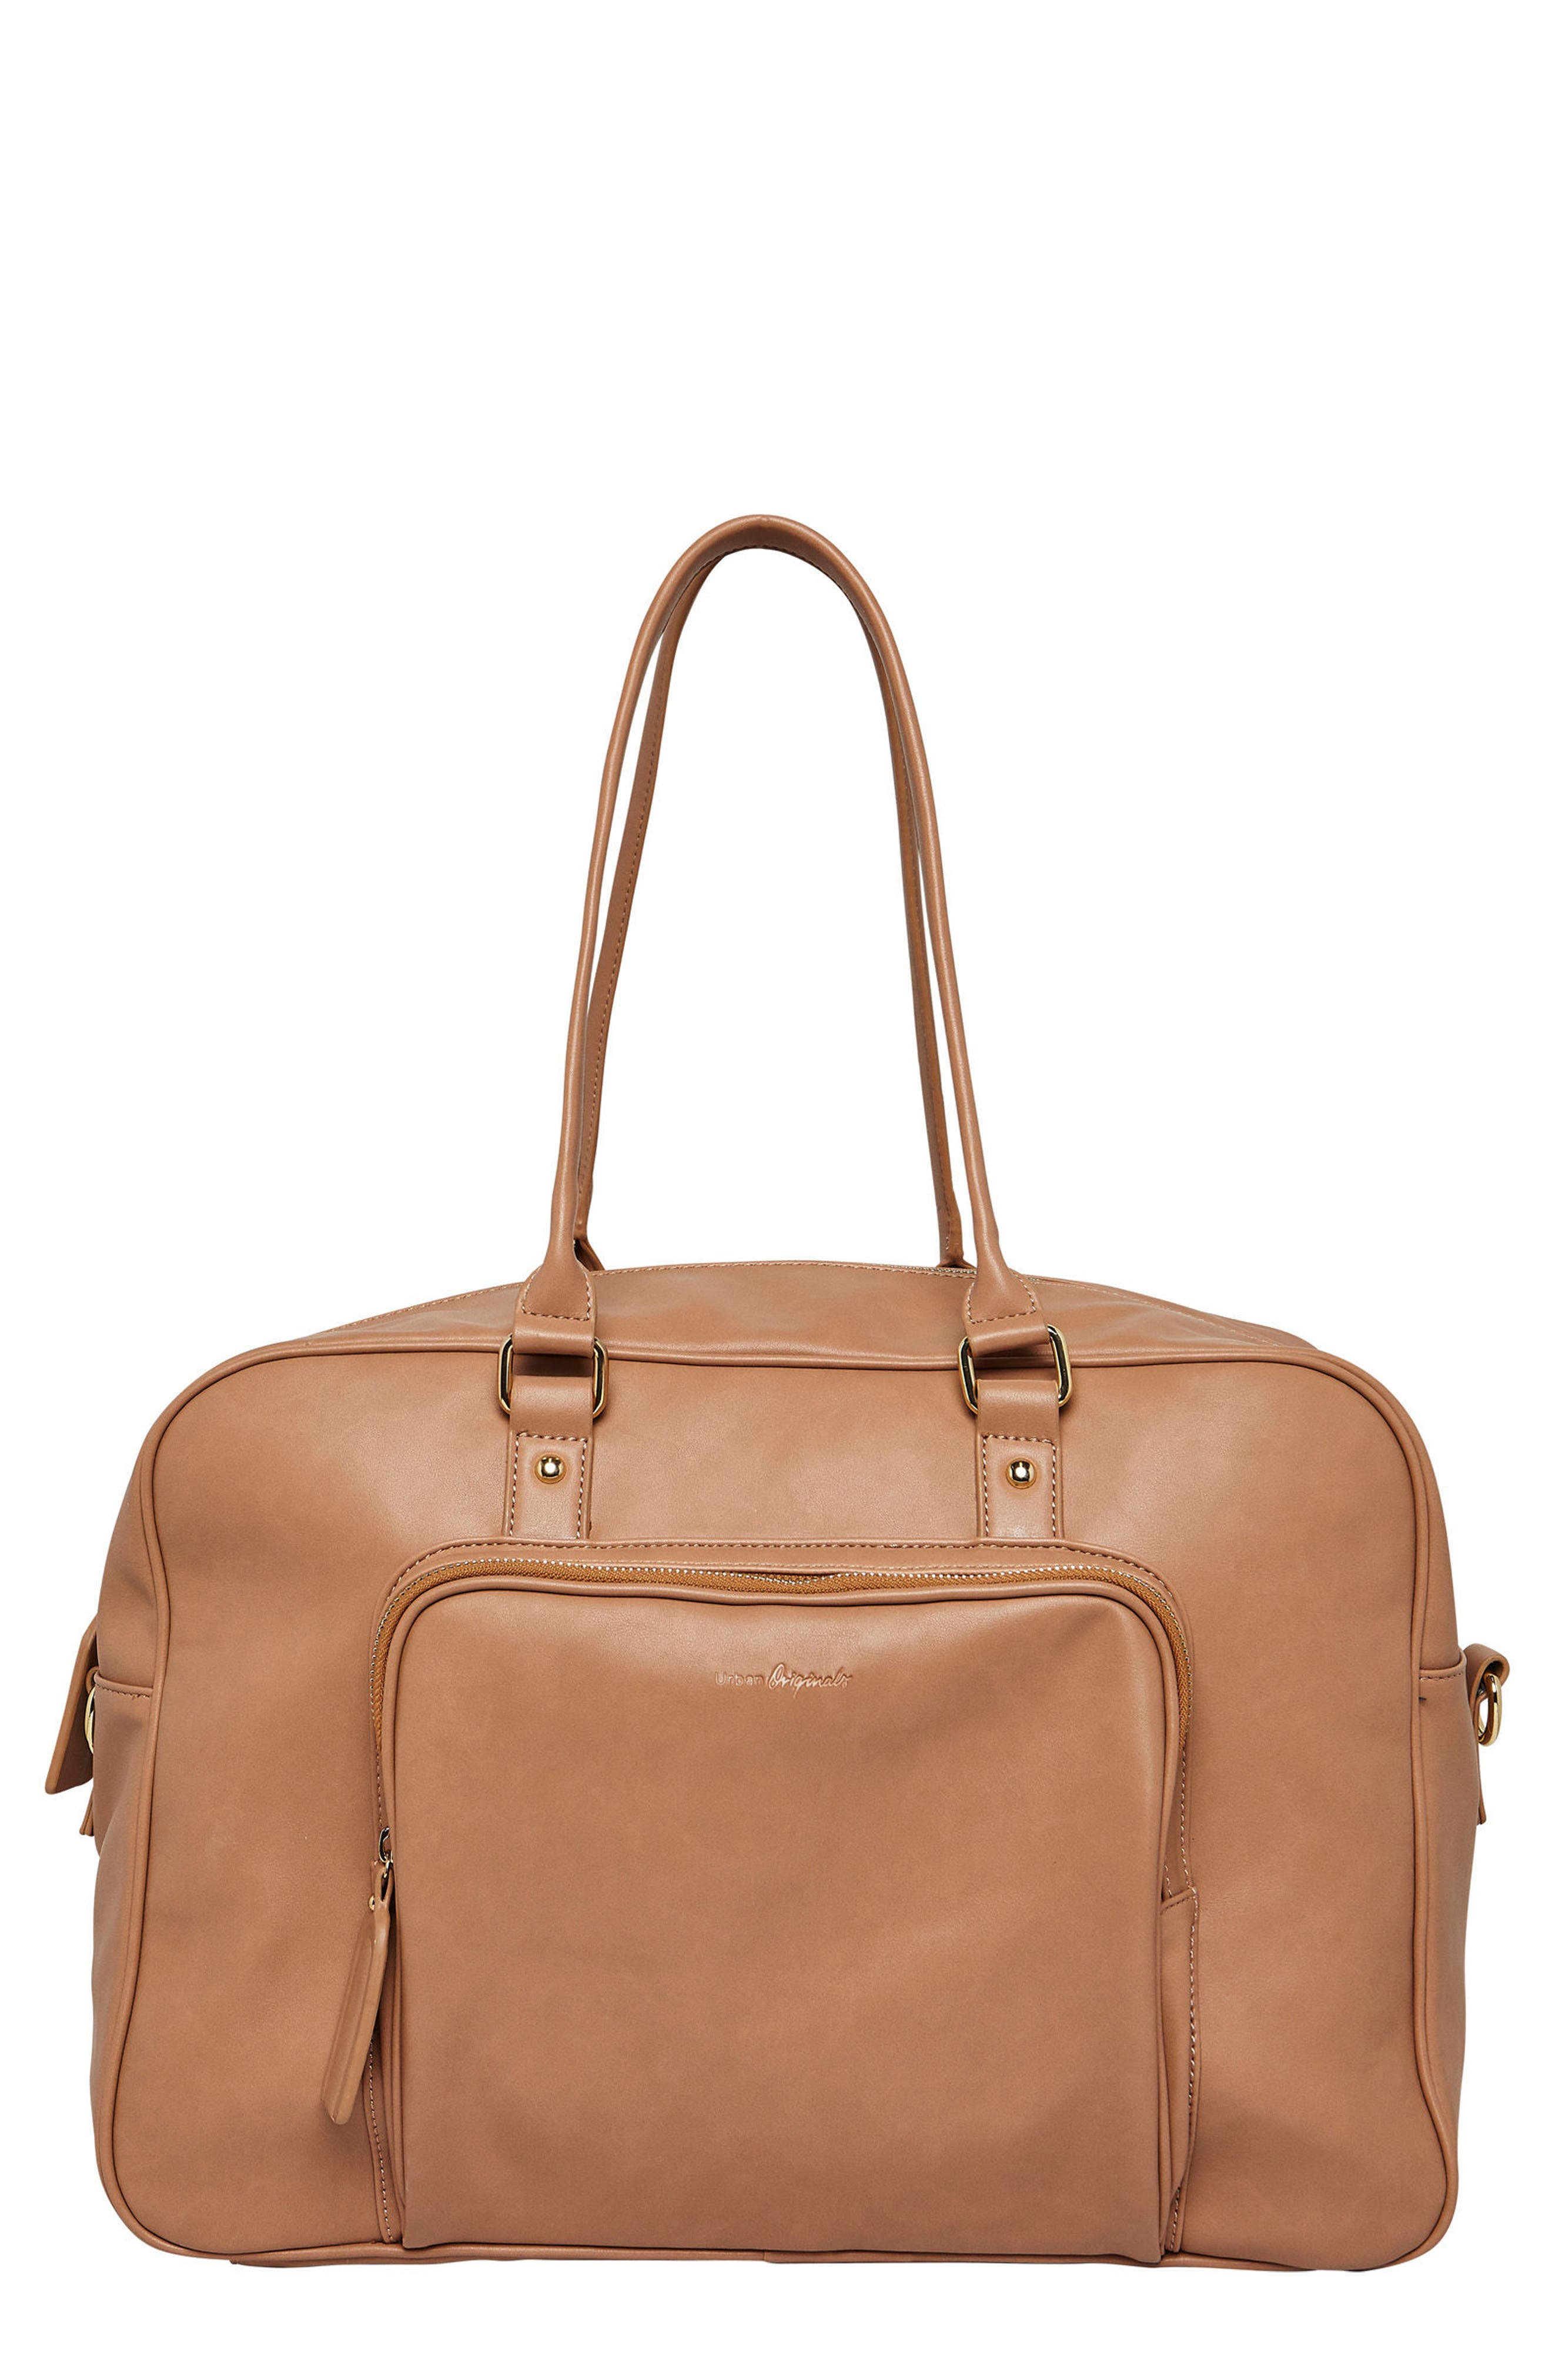 A Million Reasons Vegan Leather Tote,                         Main,                         color, Nude